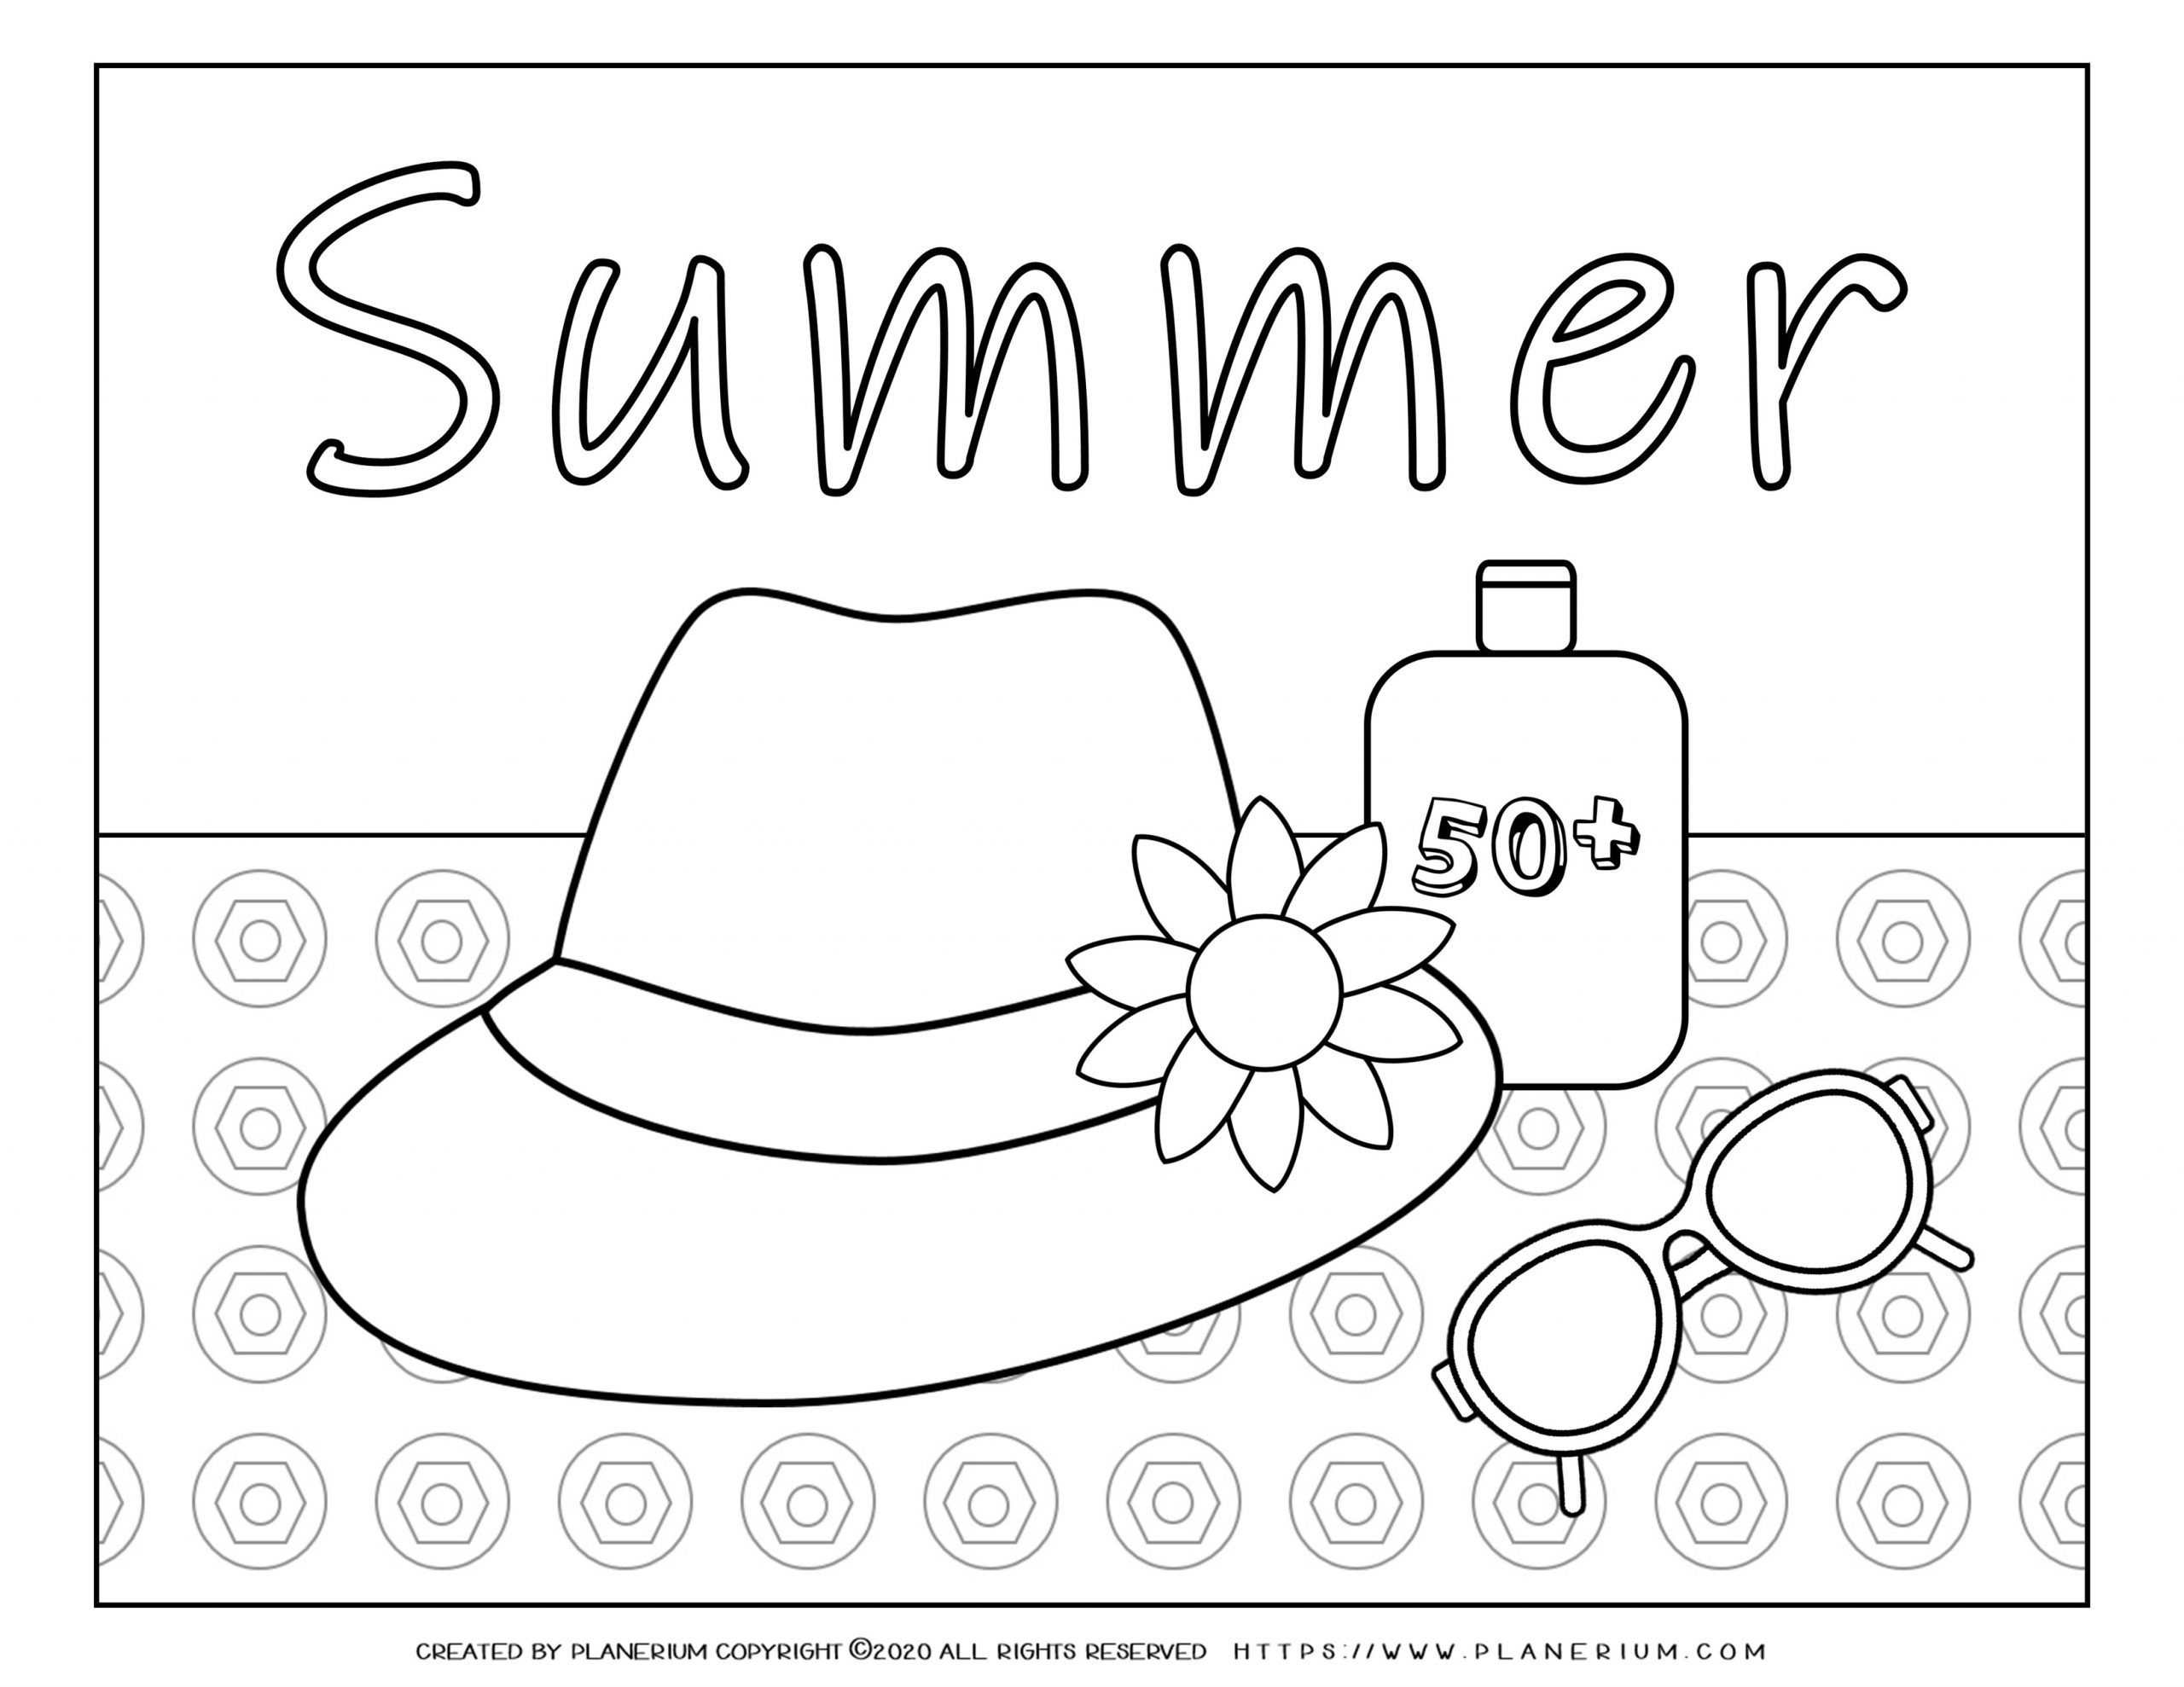 Summer Coloring Page Hat Sunglasses Sunscreen Planerium Summer Coloring Pages Free Coloring Pages Coloring Pages